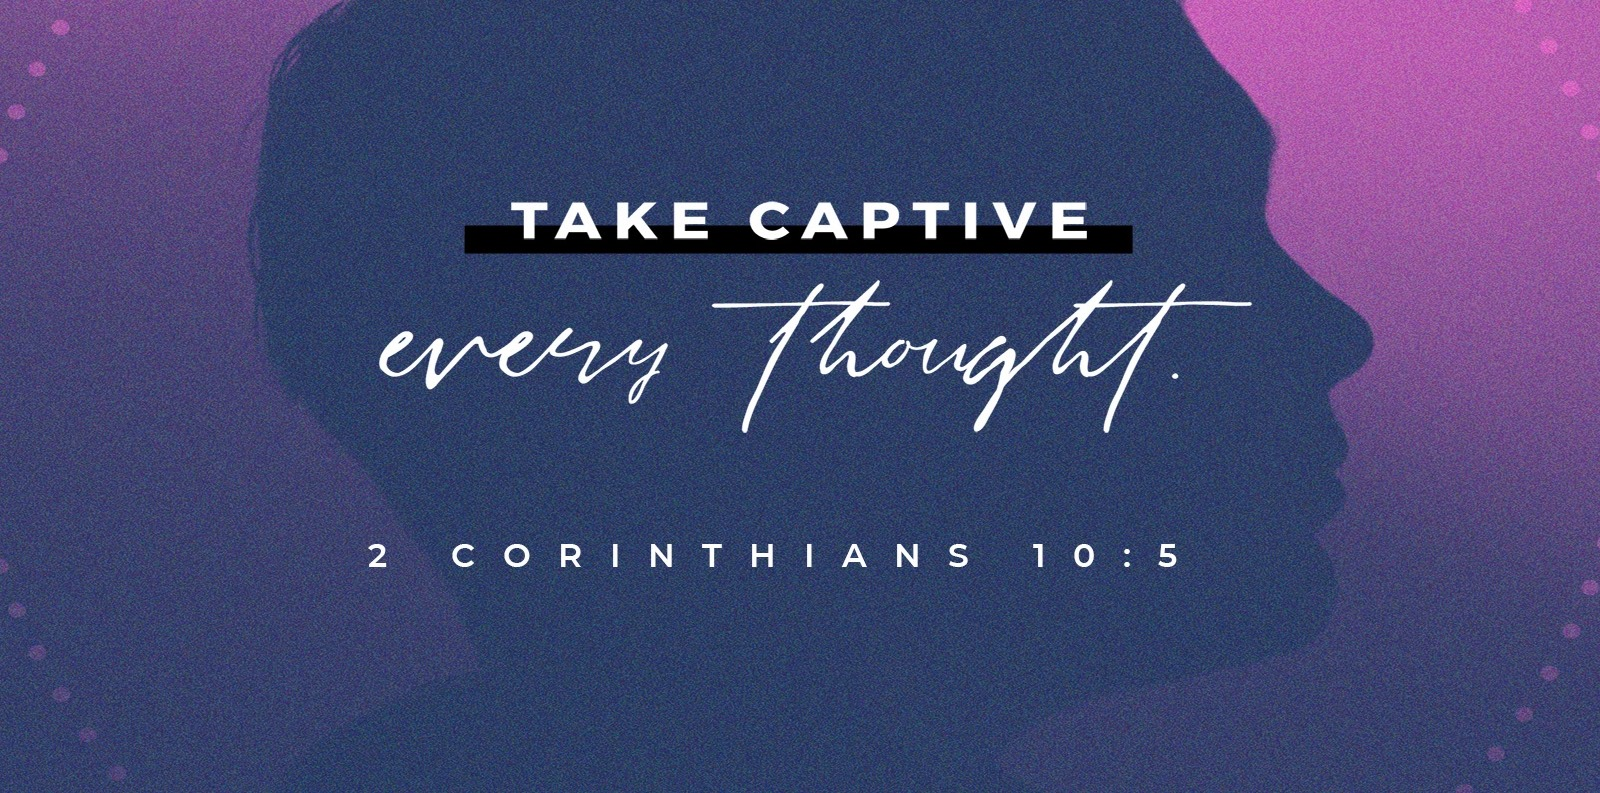 May 13: Take Captive Every Thought Live Stream, Pt. 7